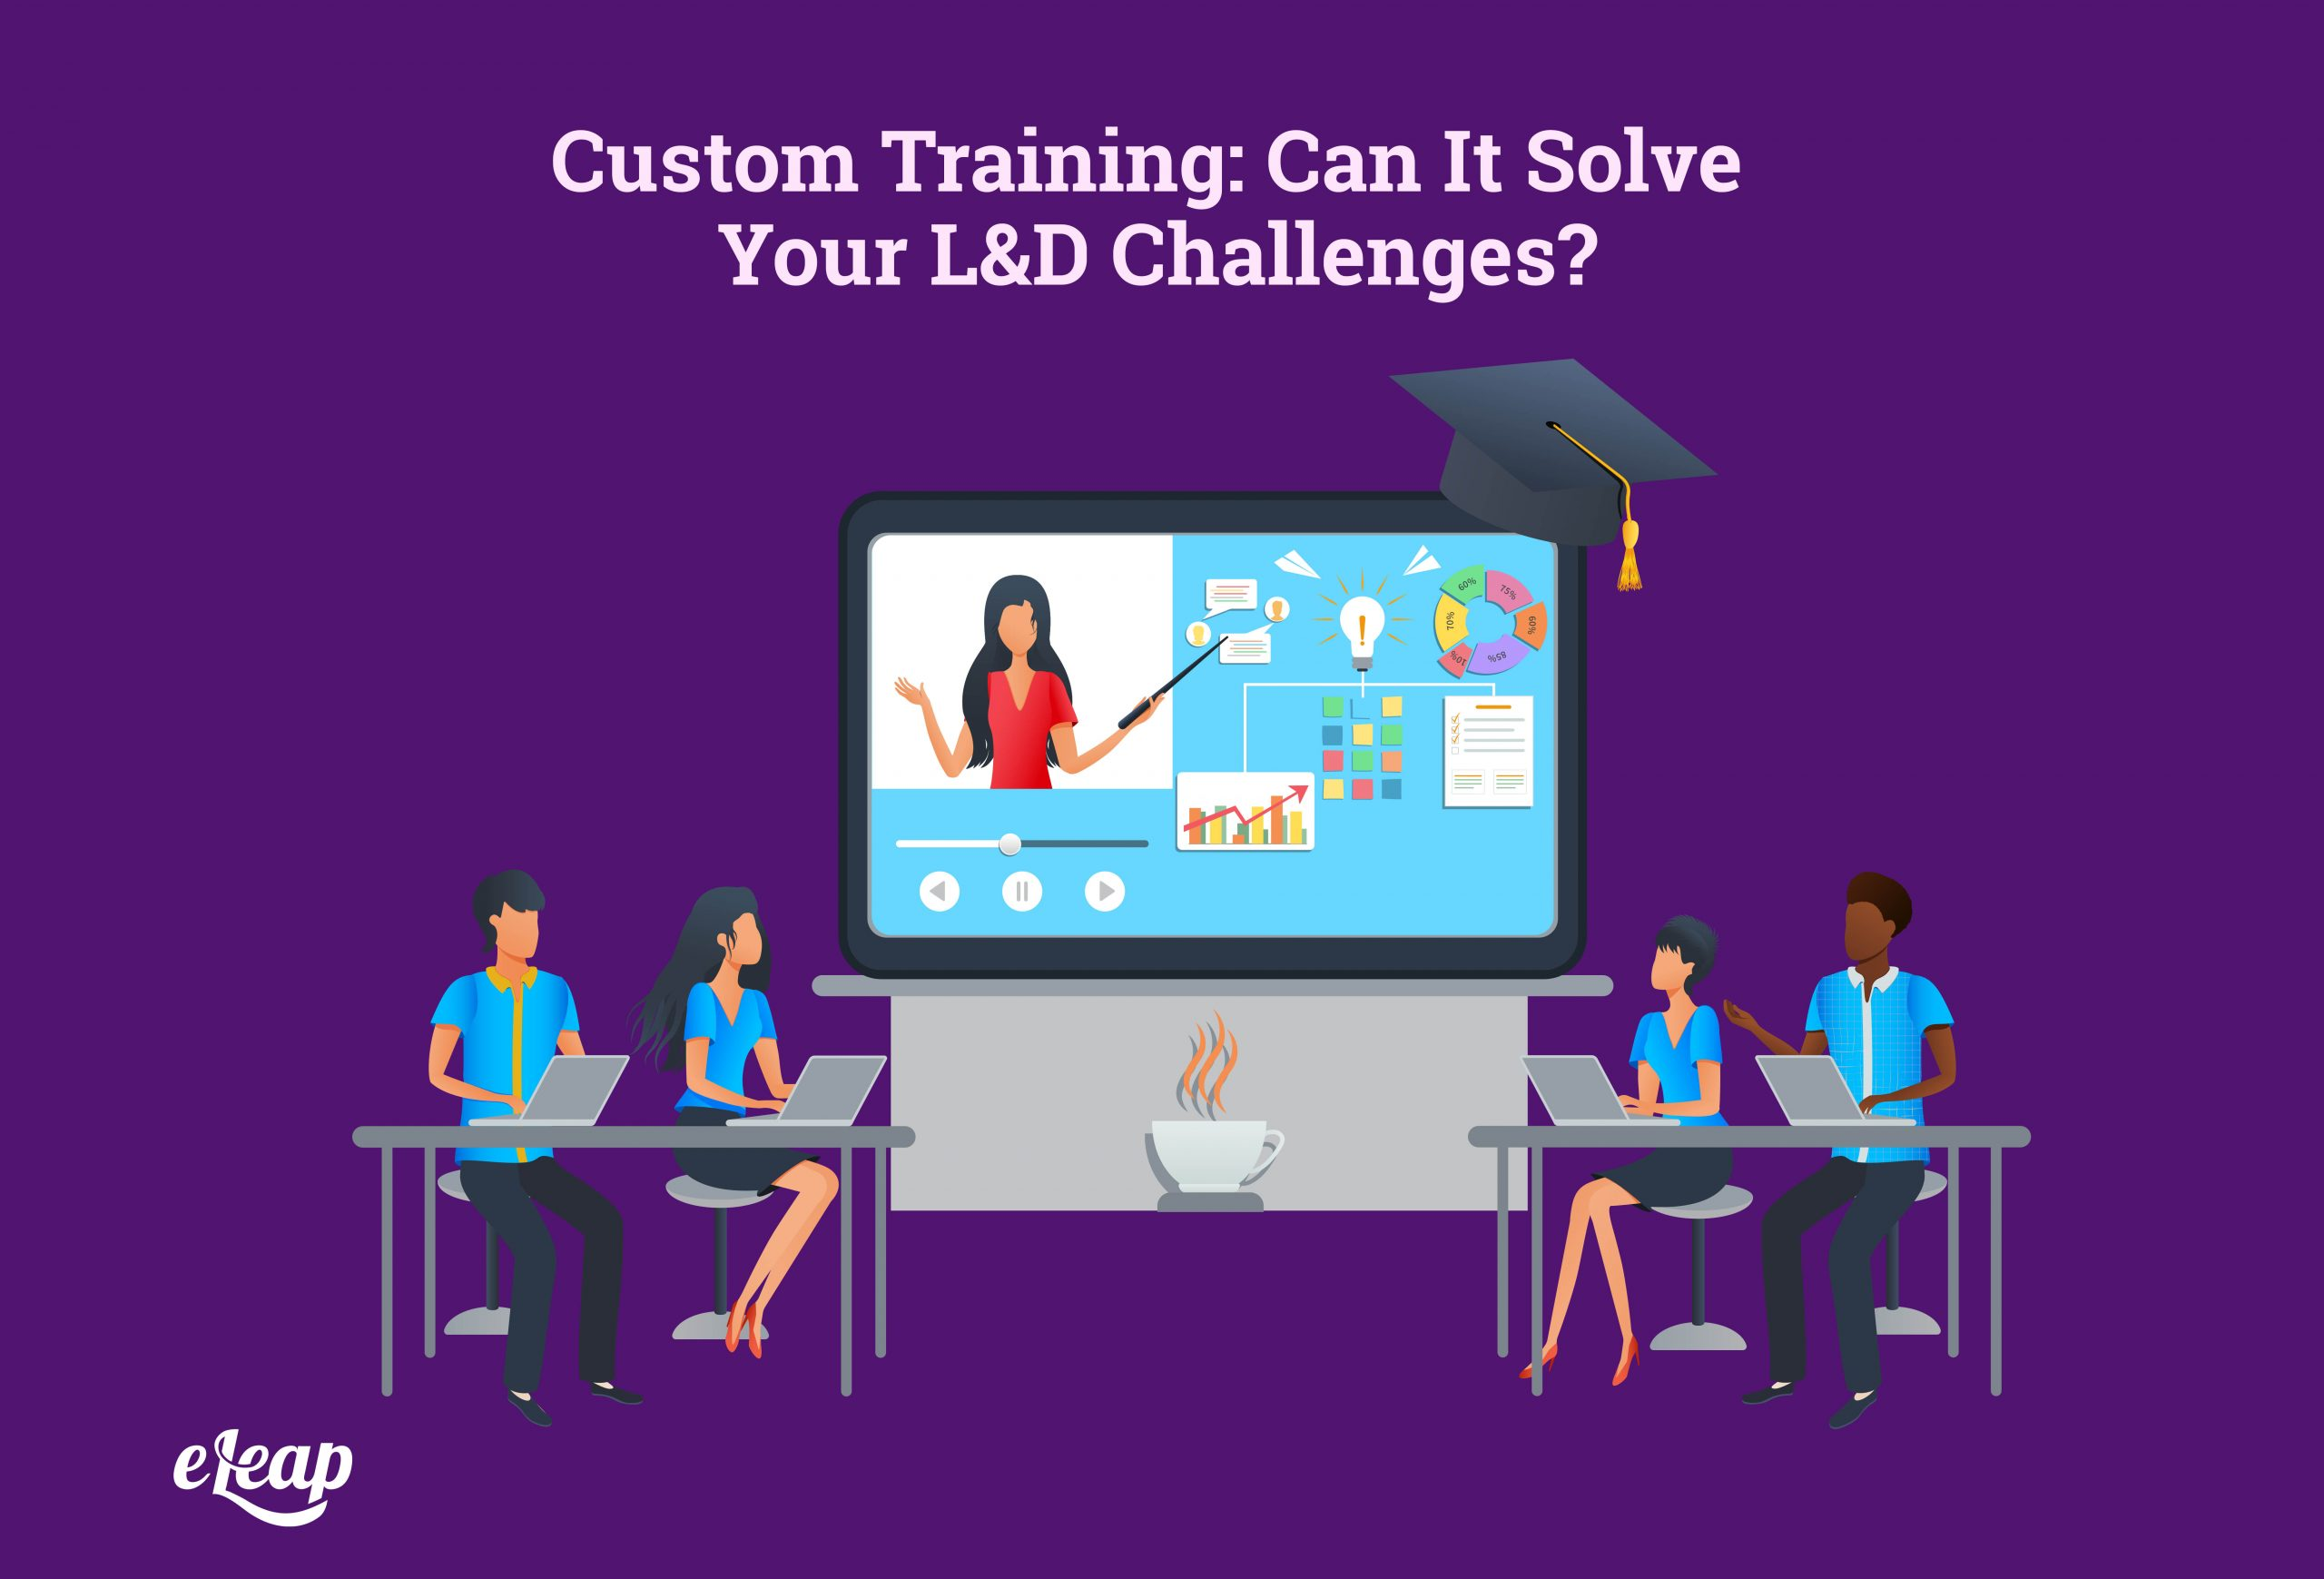 Custom Training: Can It Solve Your L&D Challenges?